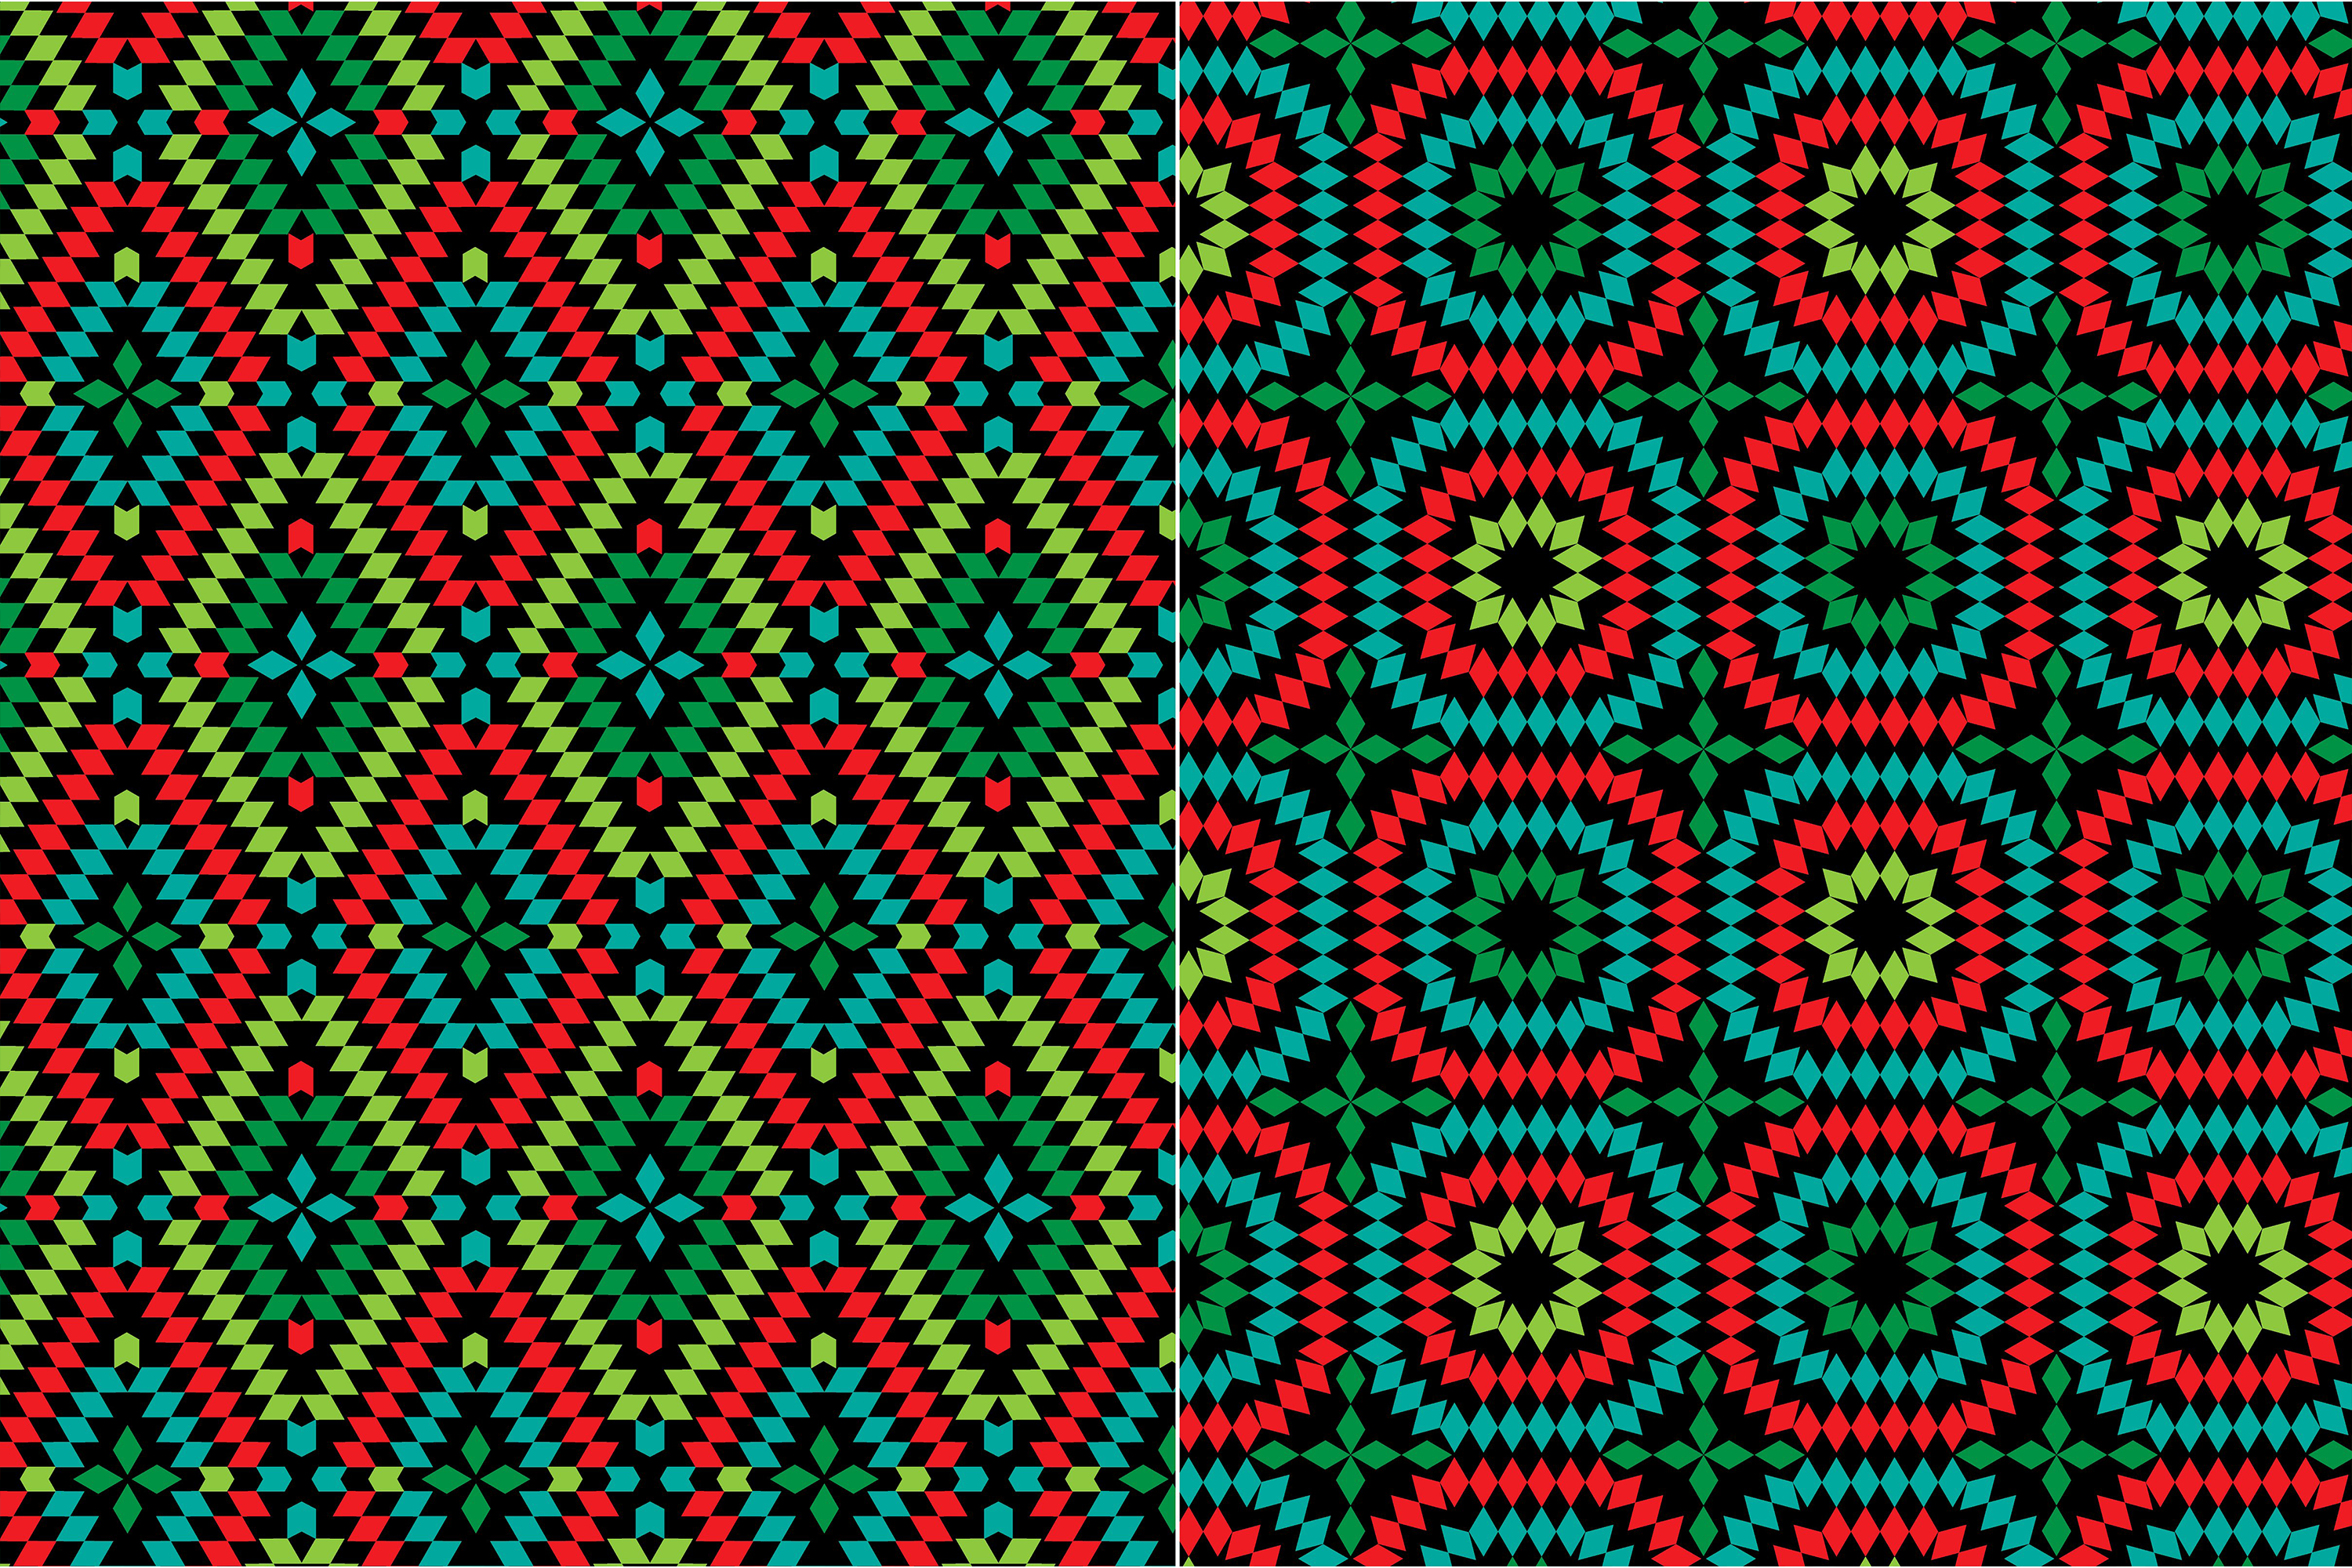 Granny Square Patterns on Black example image 2